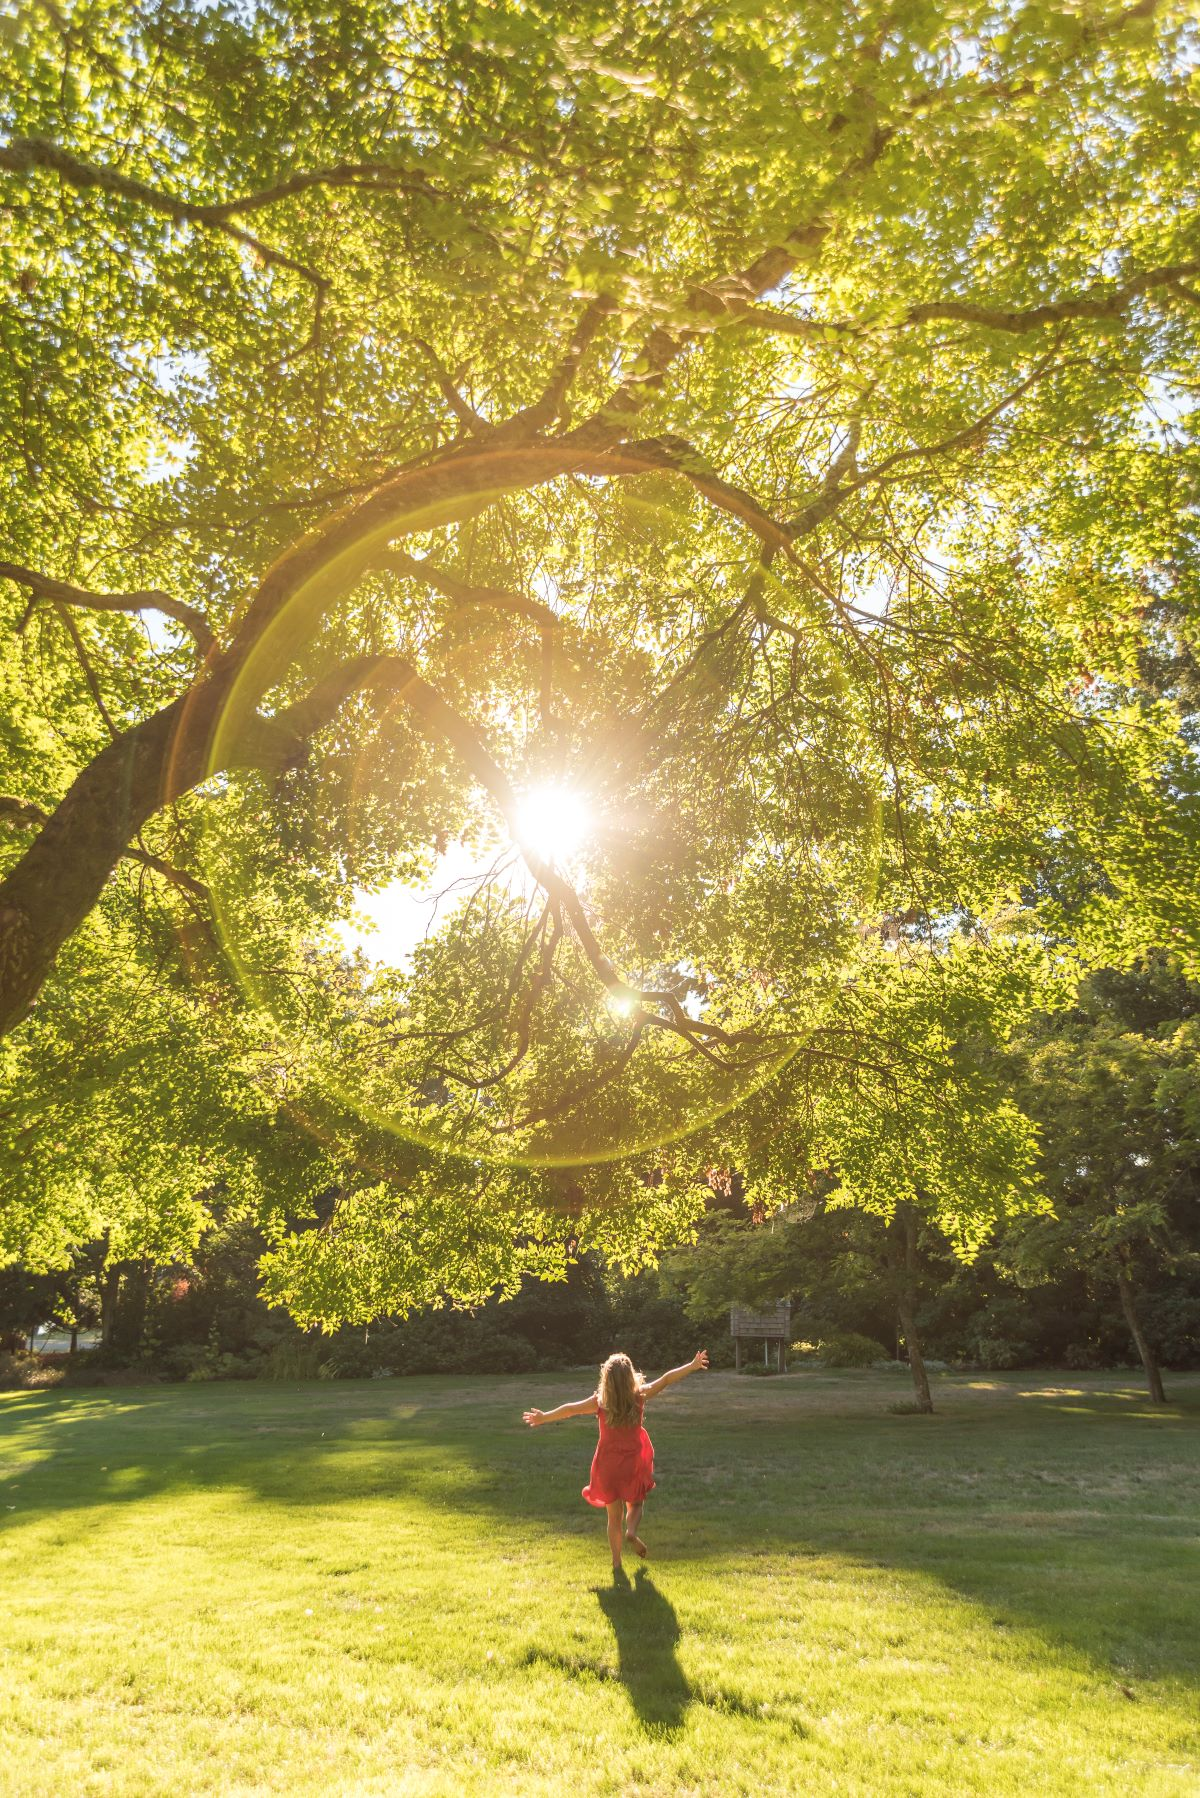 A young girl running under a big tree in the sunshine